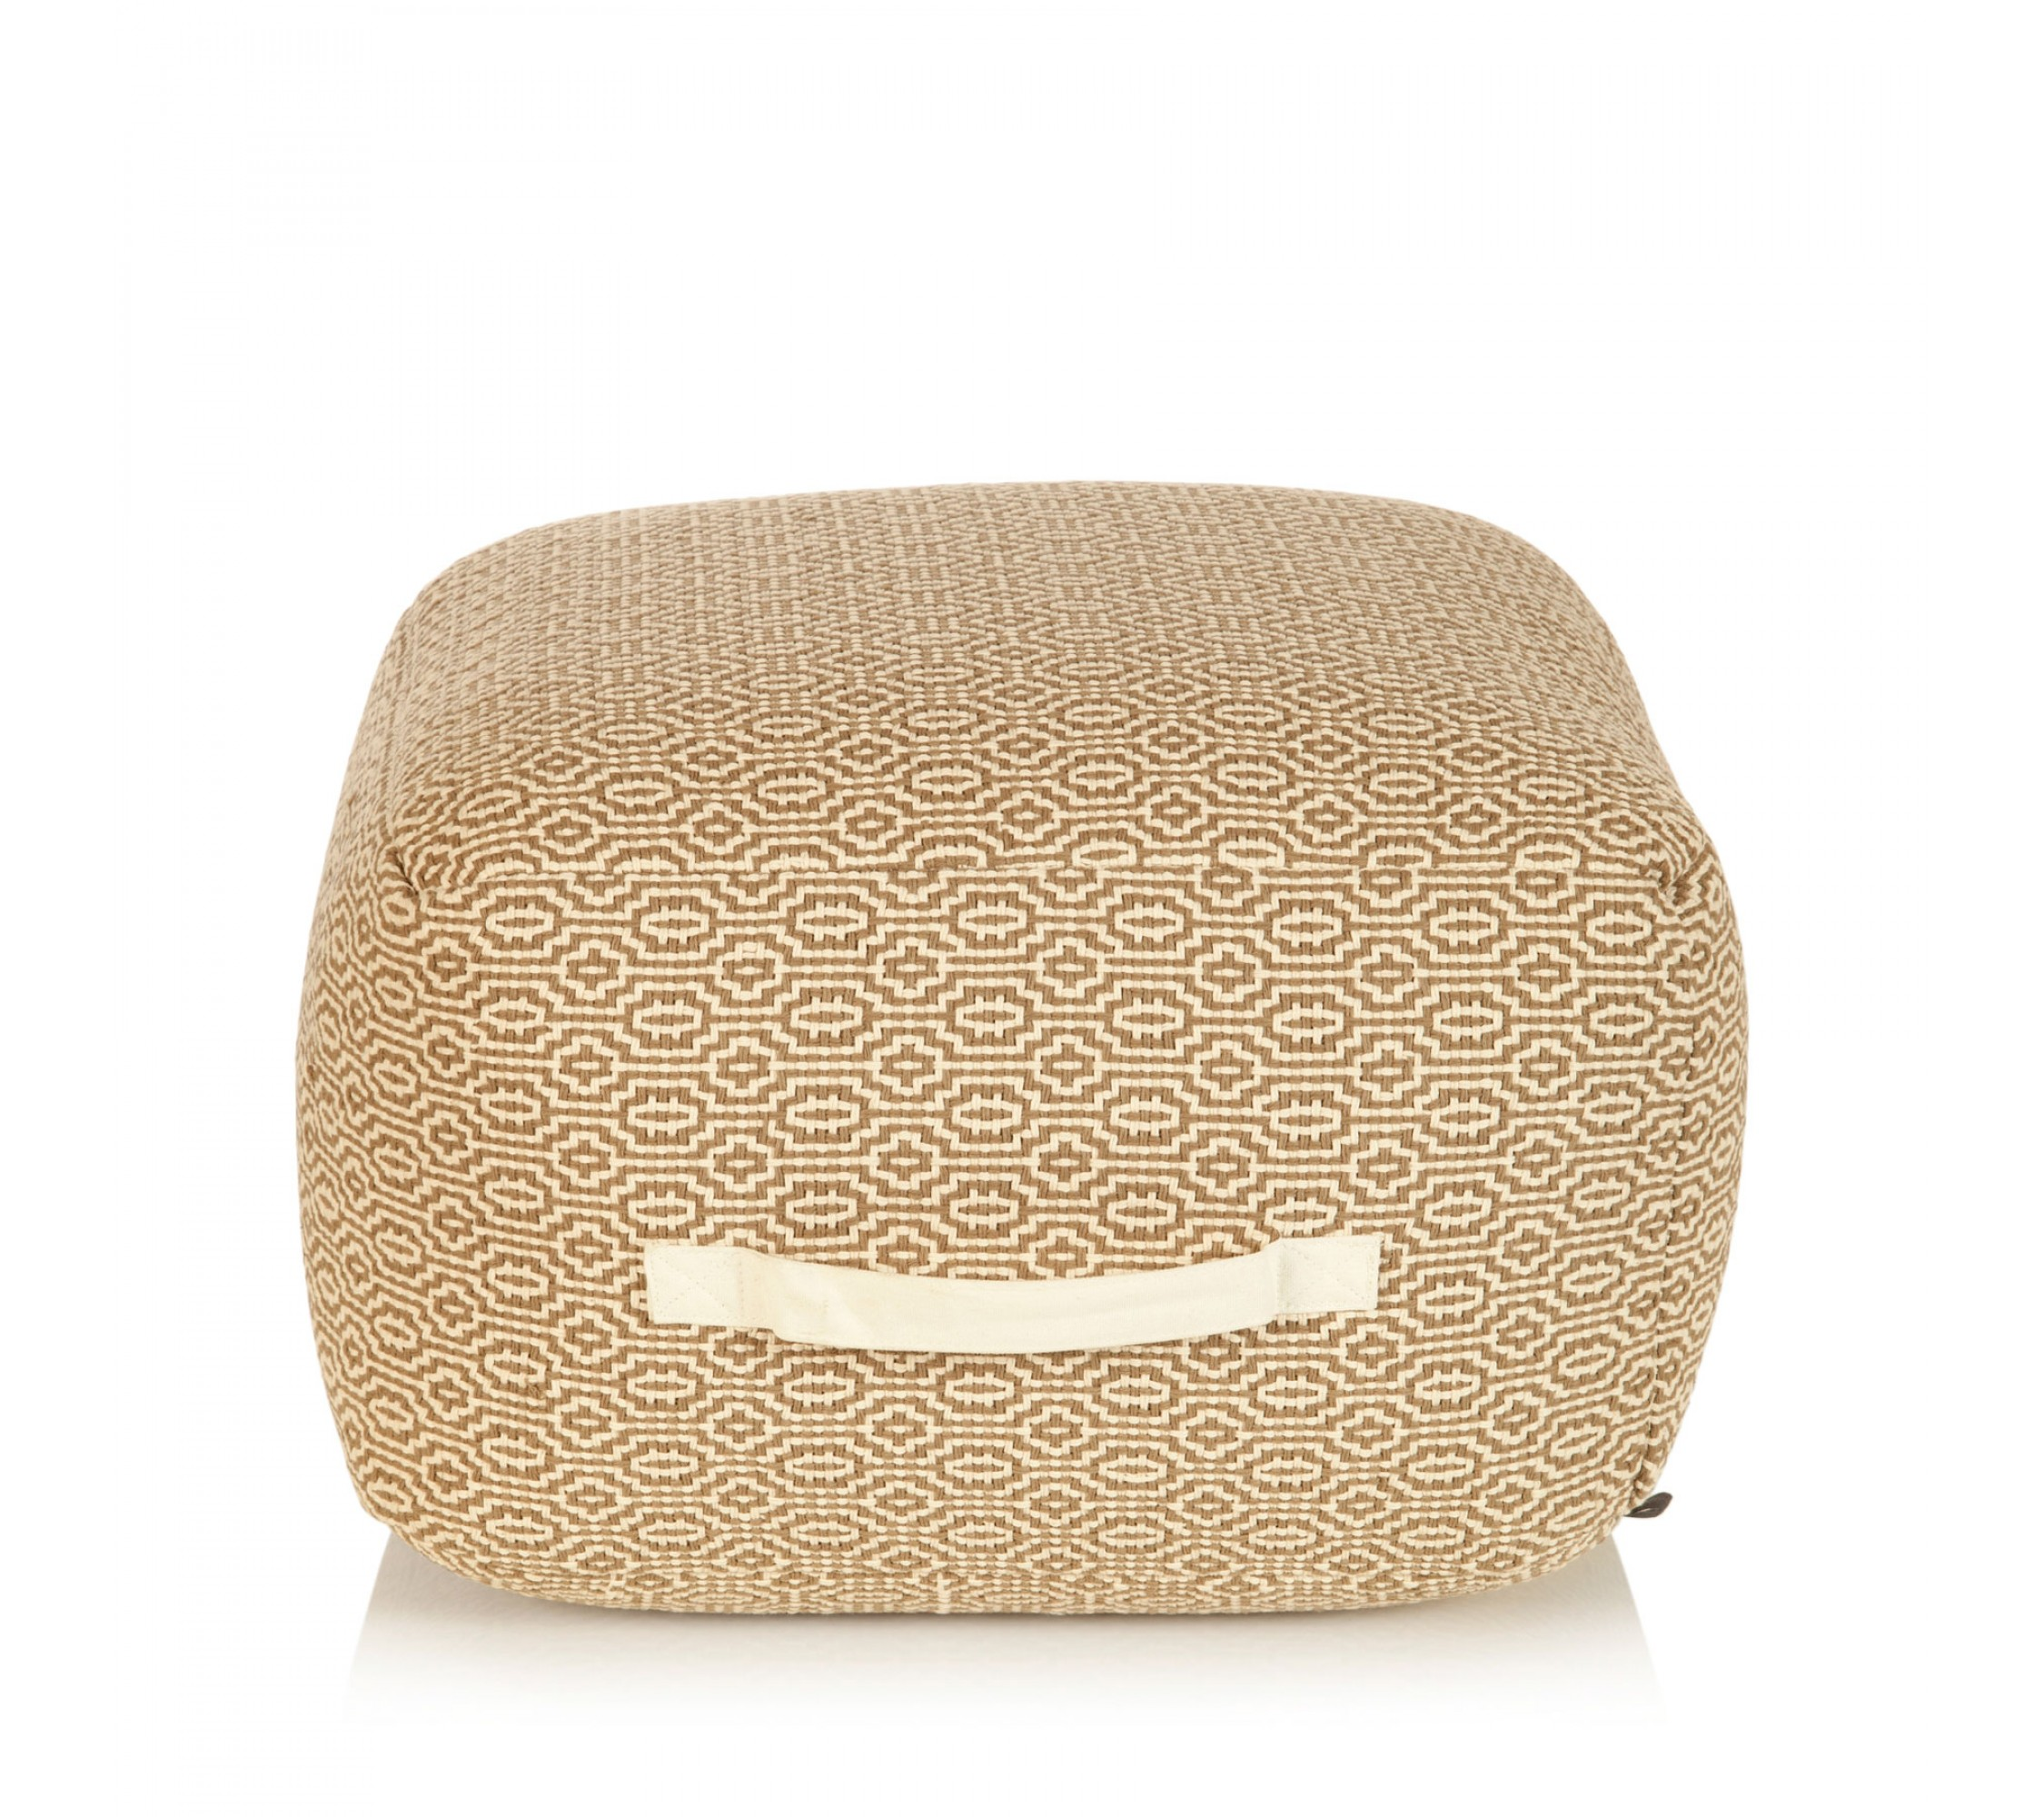 Pouf - Cambridge Pouff Taupe